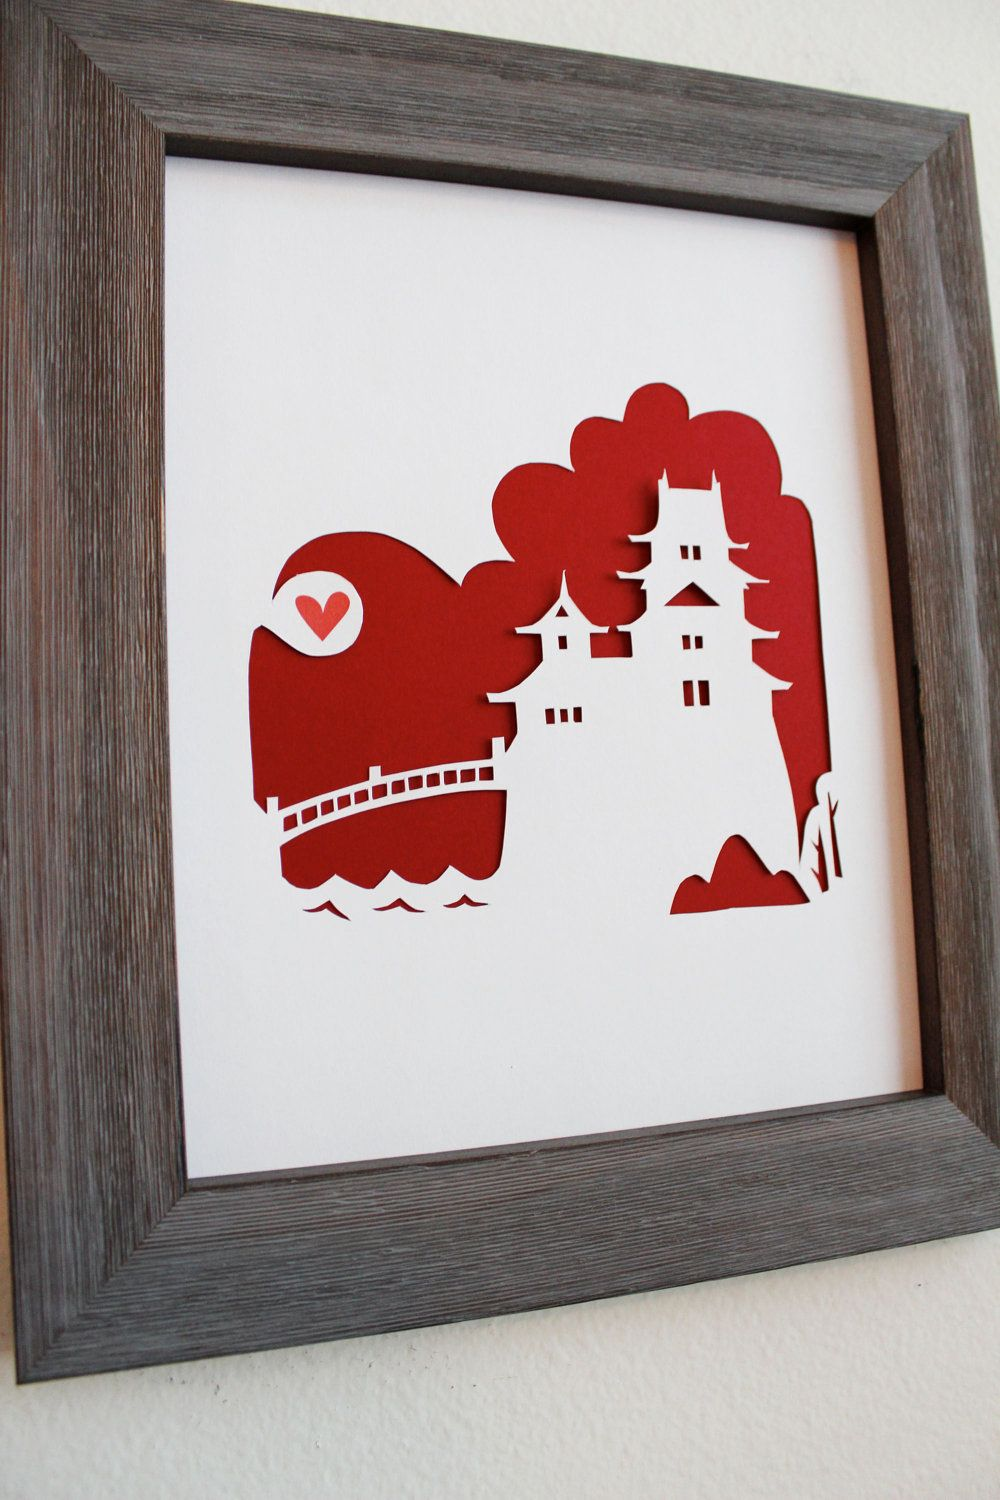 Japan - Japanese Castle. Personalized Gift or Wedding Gift. $26.00 ...